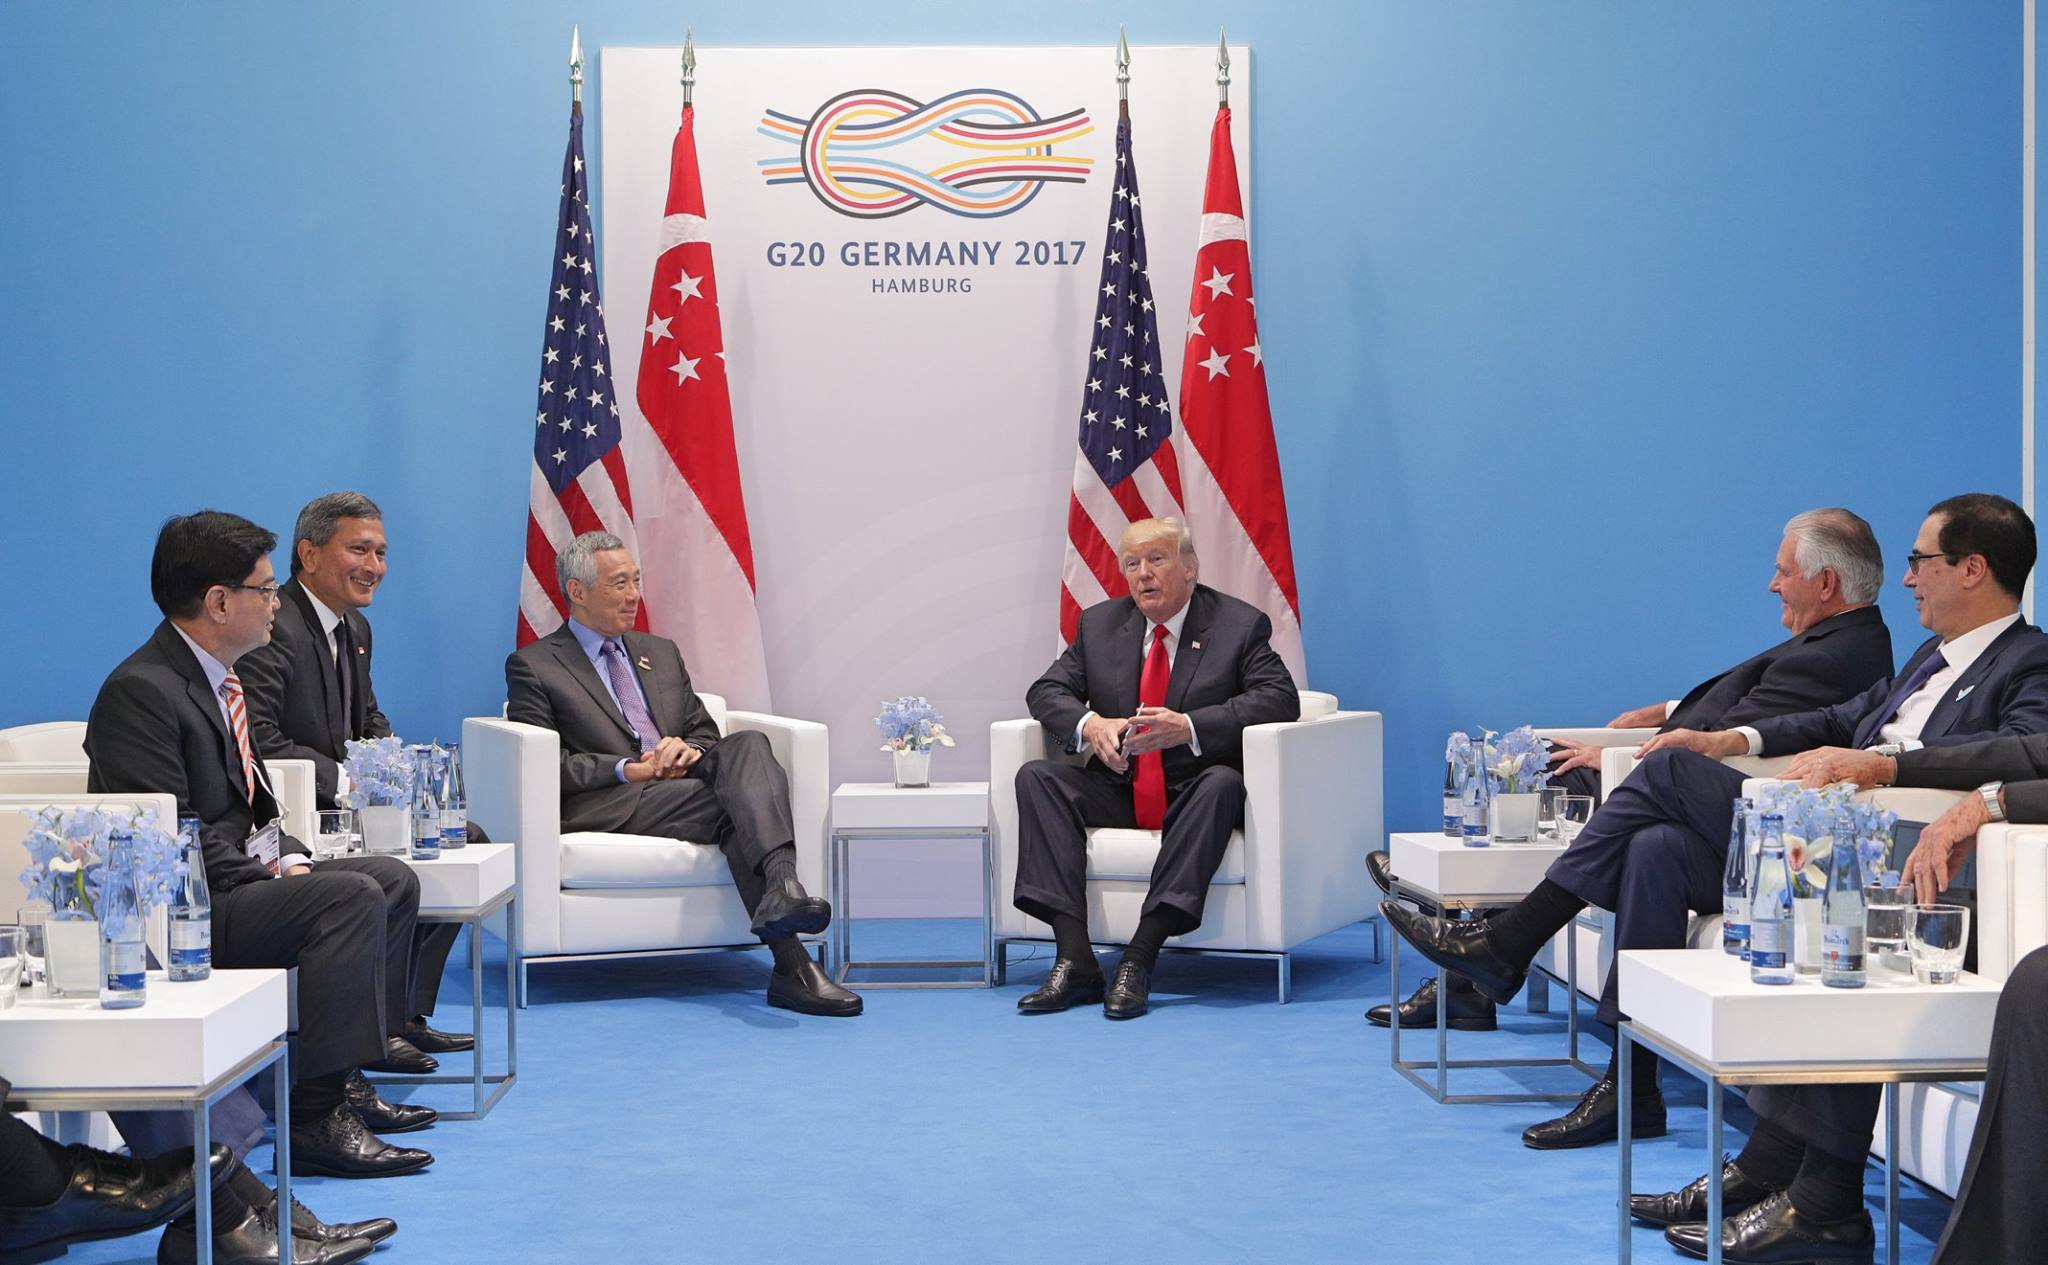 PM Lee Hsien Loong meets President Donald Trump at G20 in Hamburg earlier this year. Photo courtesy: MCI Kenji Soon